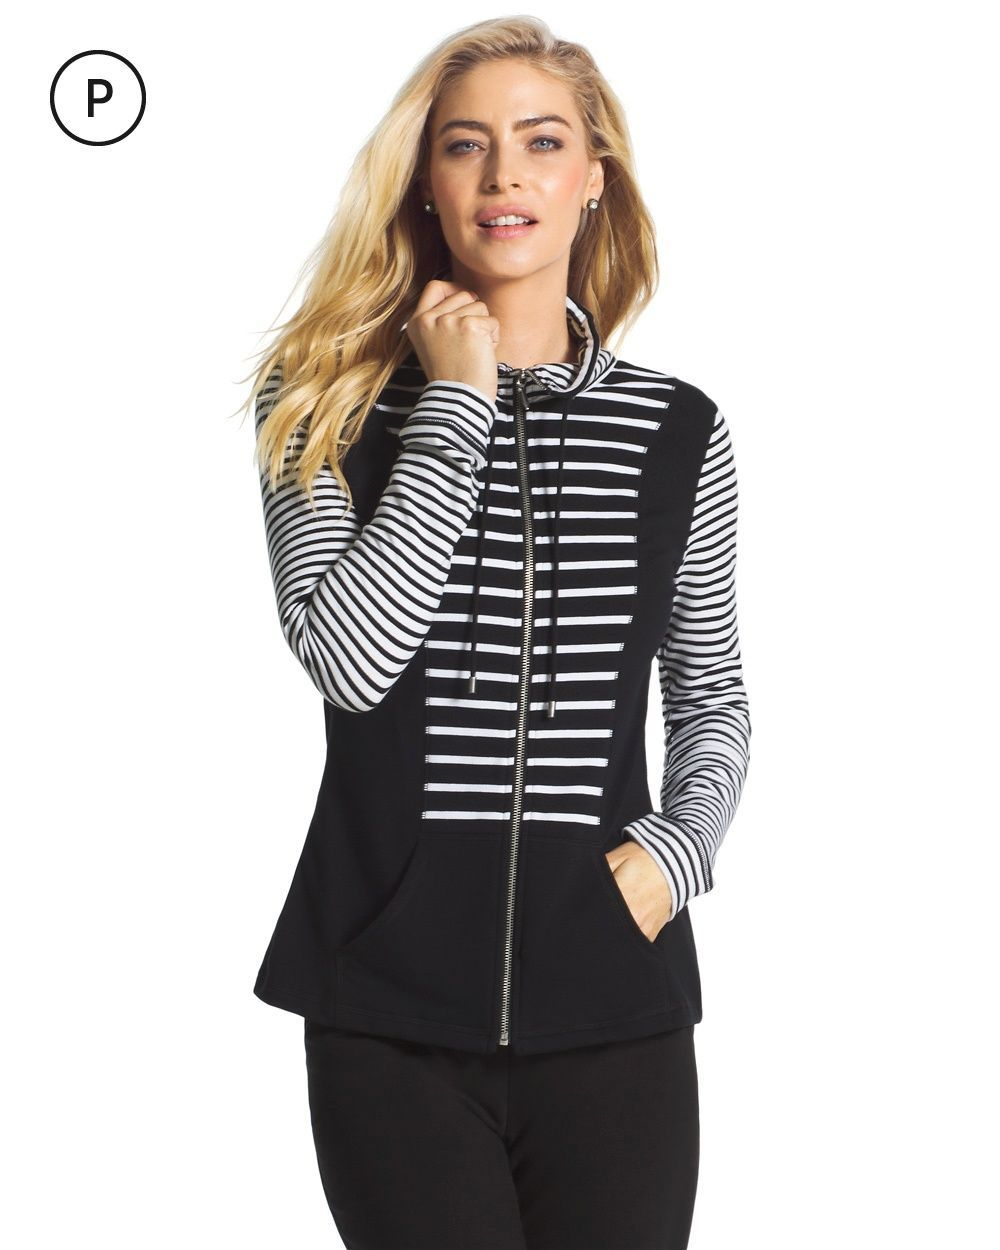 Chico's Women's Zenergy Knit Collection Petite Stripe Inset Jacket